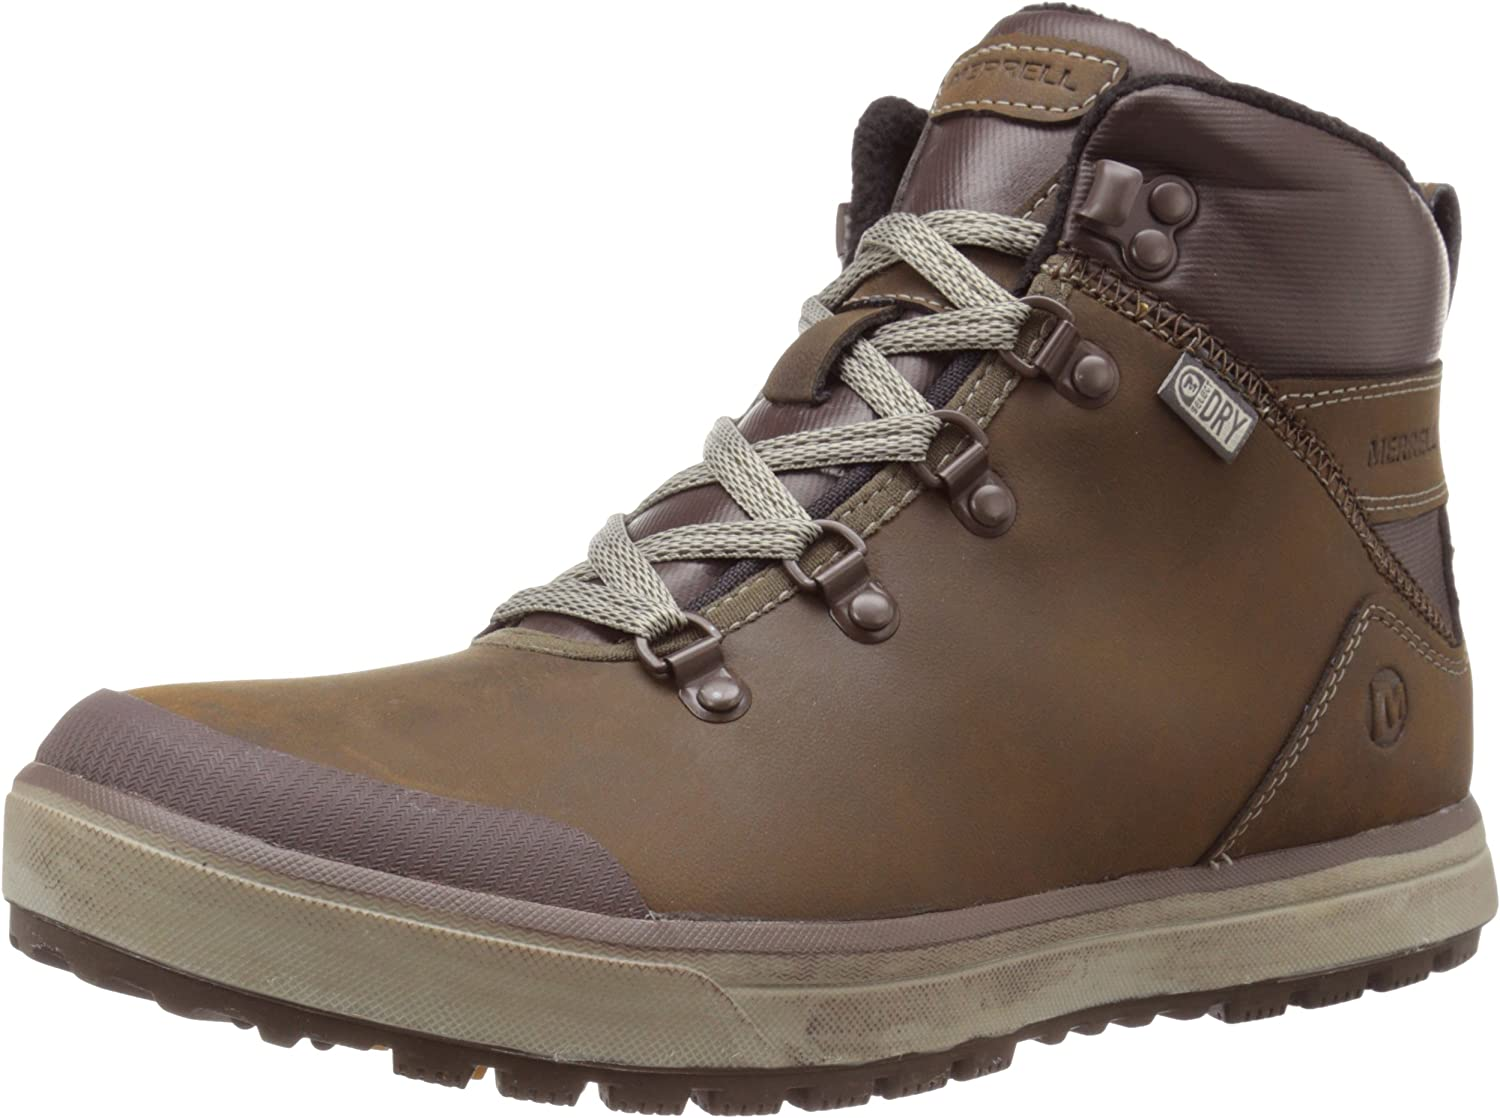 Merrell Men's Turku Trek Waterproof High Rise Hiking Boots